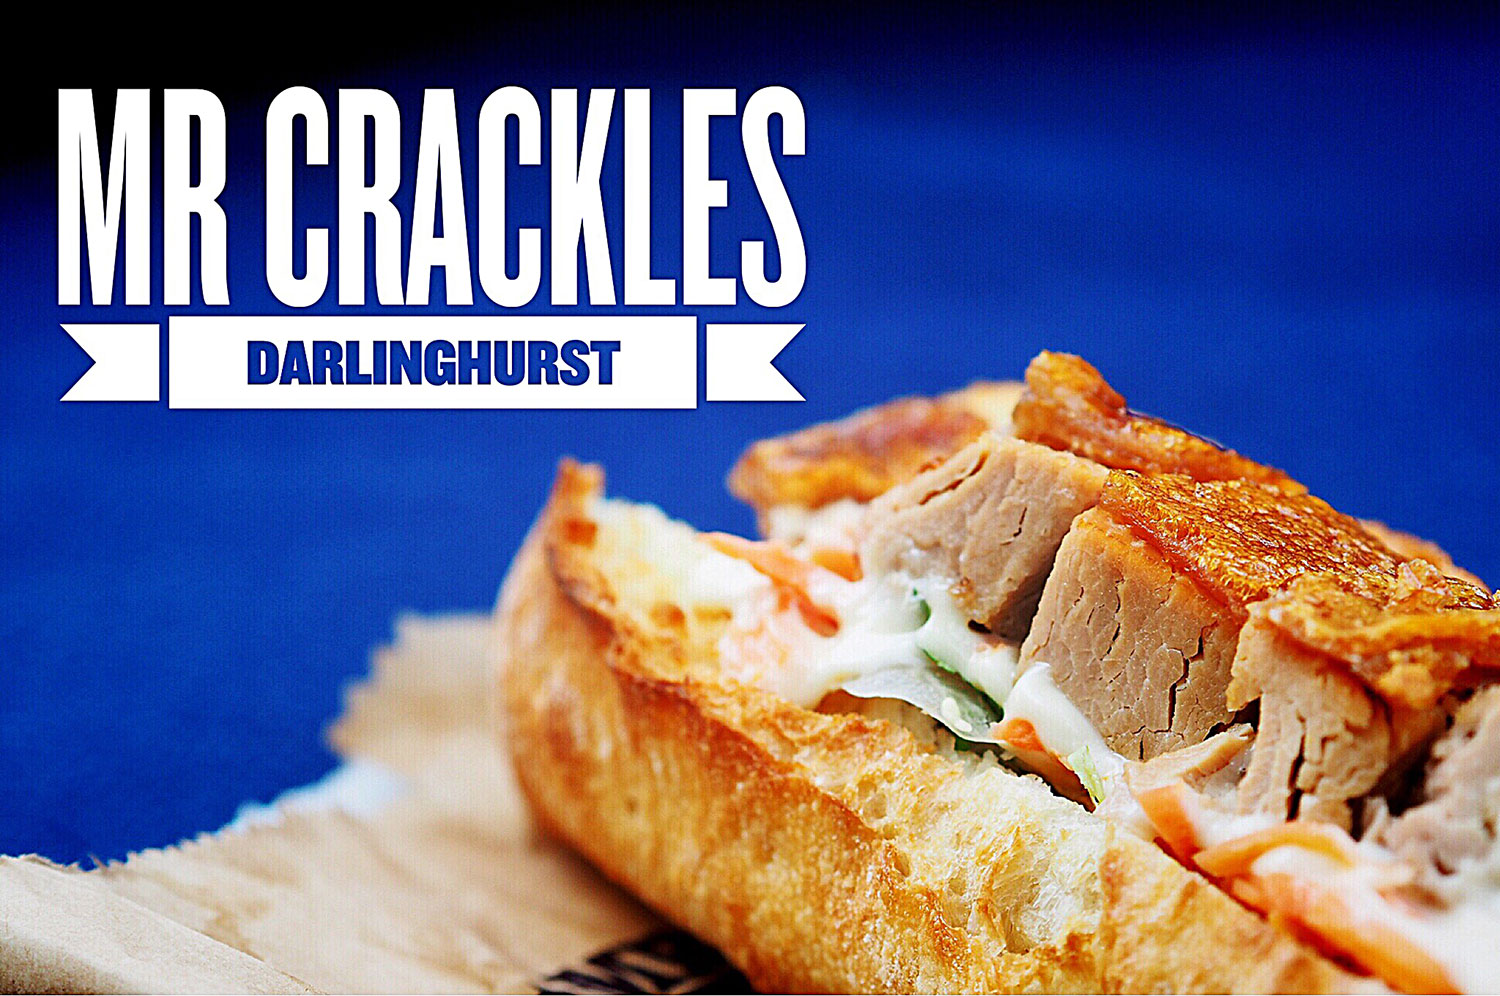 Sydney Food Blog Review of Mr Crackles, Darlinghurst